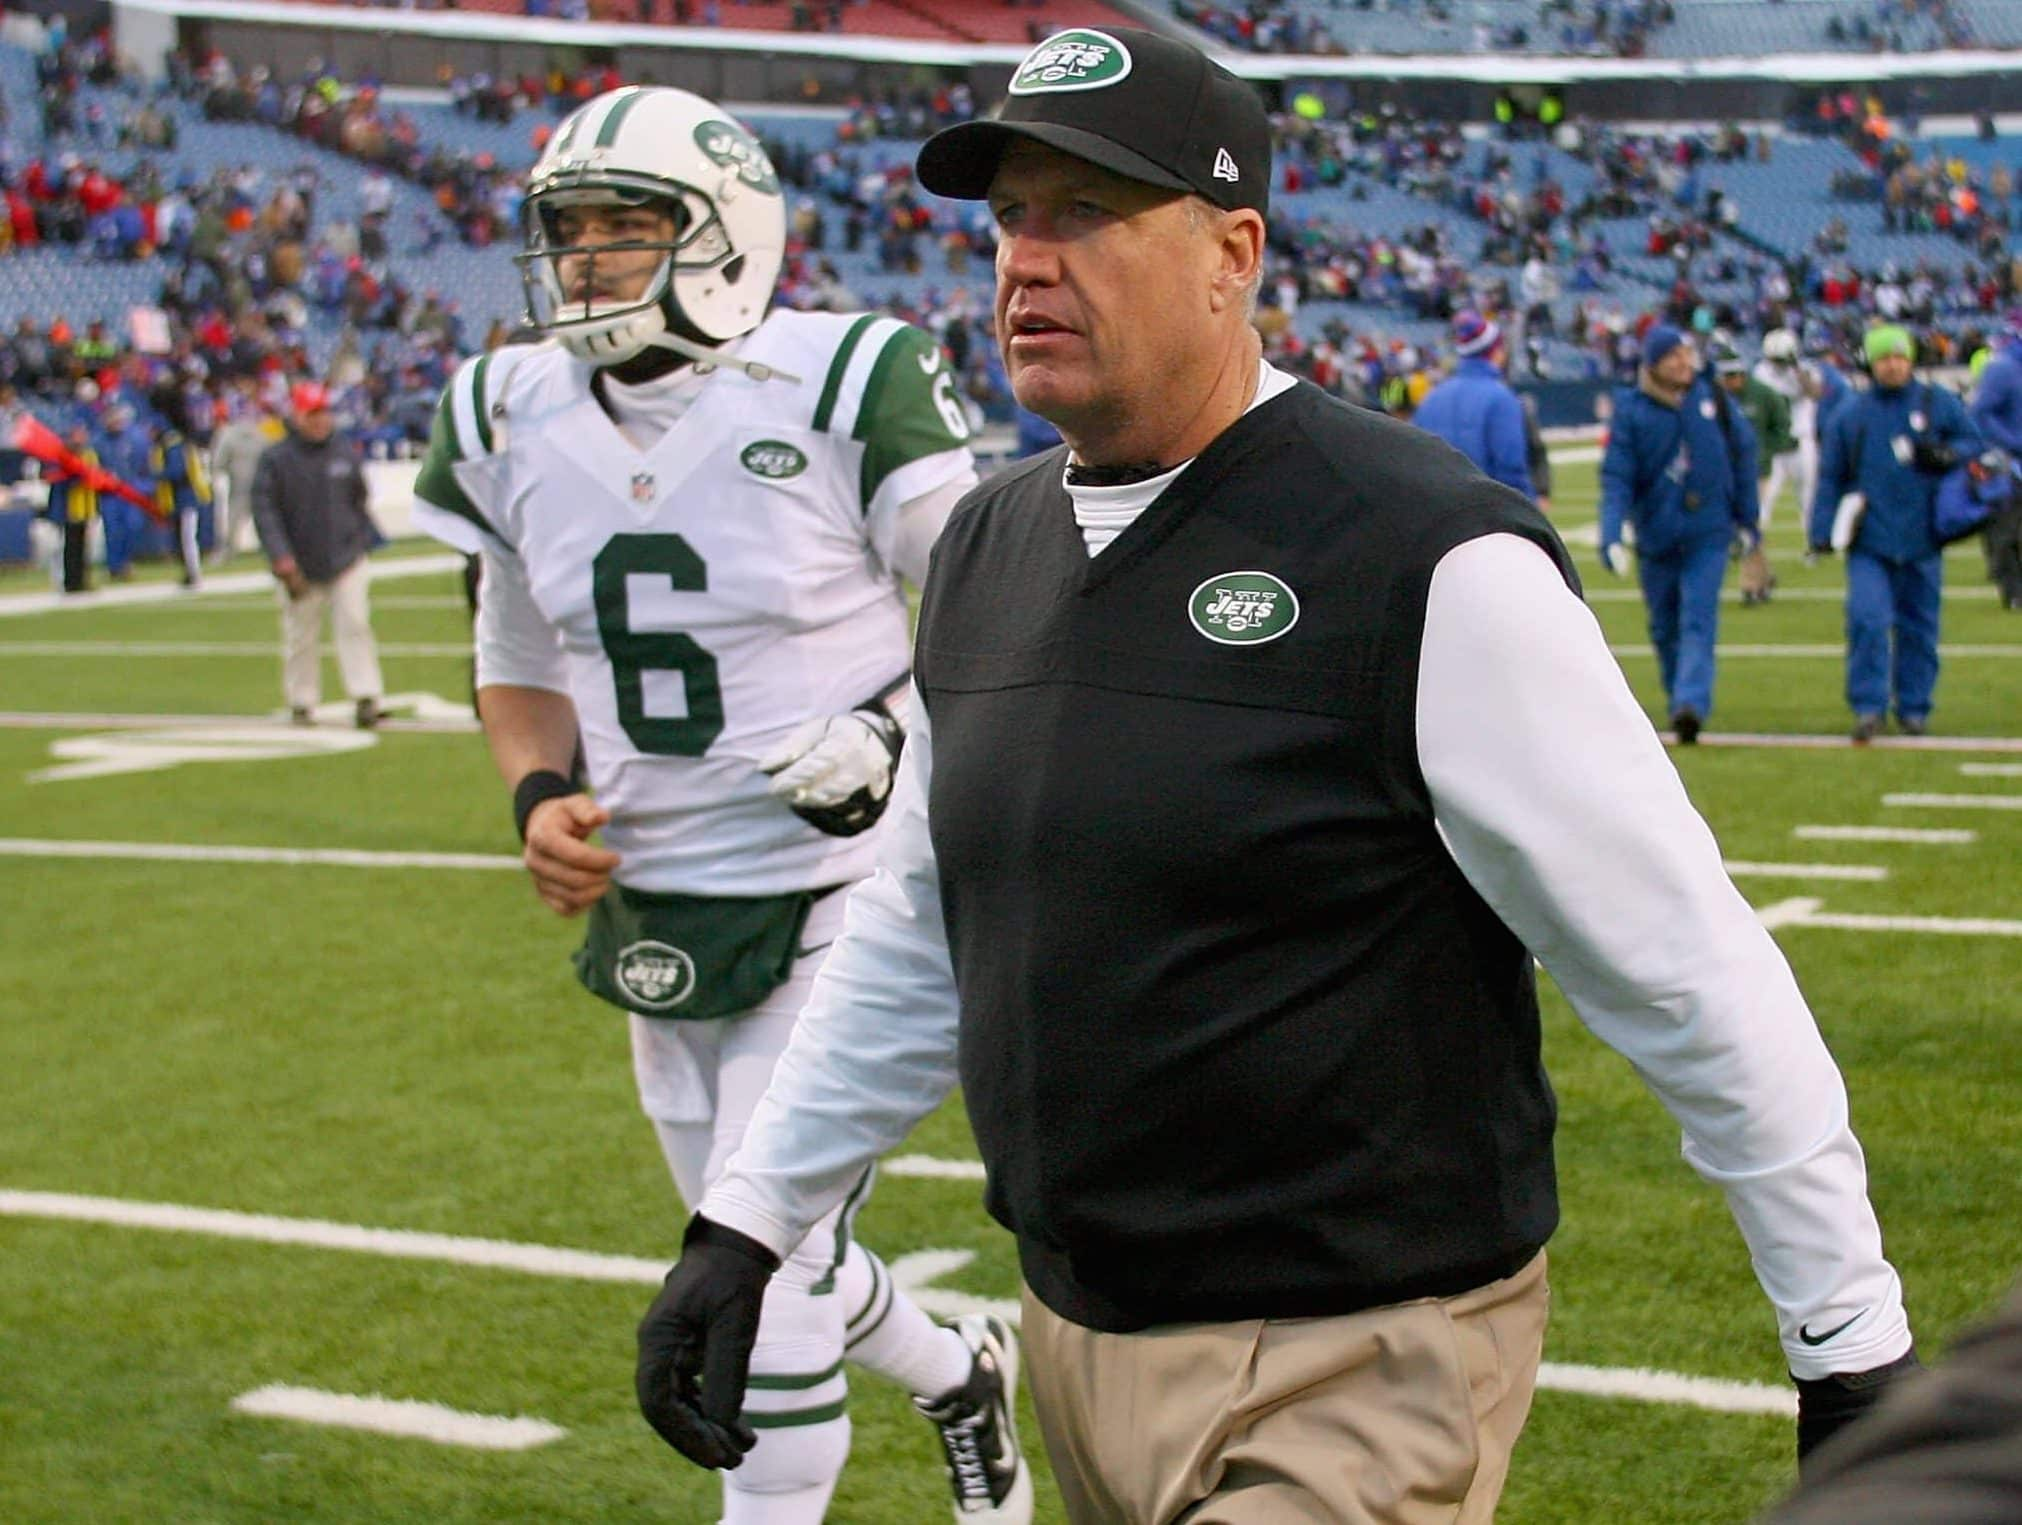 ORCHARD PARK, NY - DECEMBER 30: Head coach Rex Ryan and Mark Sanchez #6 of the New York Jets walk off the field after losing to the Buffalo Bills 28-9 at Ralph Wilson Stadium on December 30, 2012 in Orchard Park, New York.